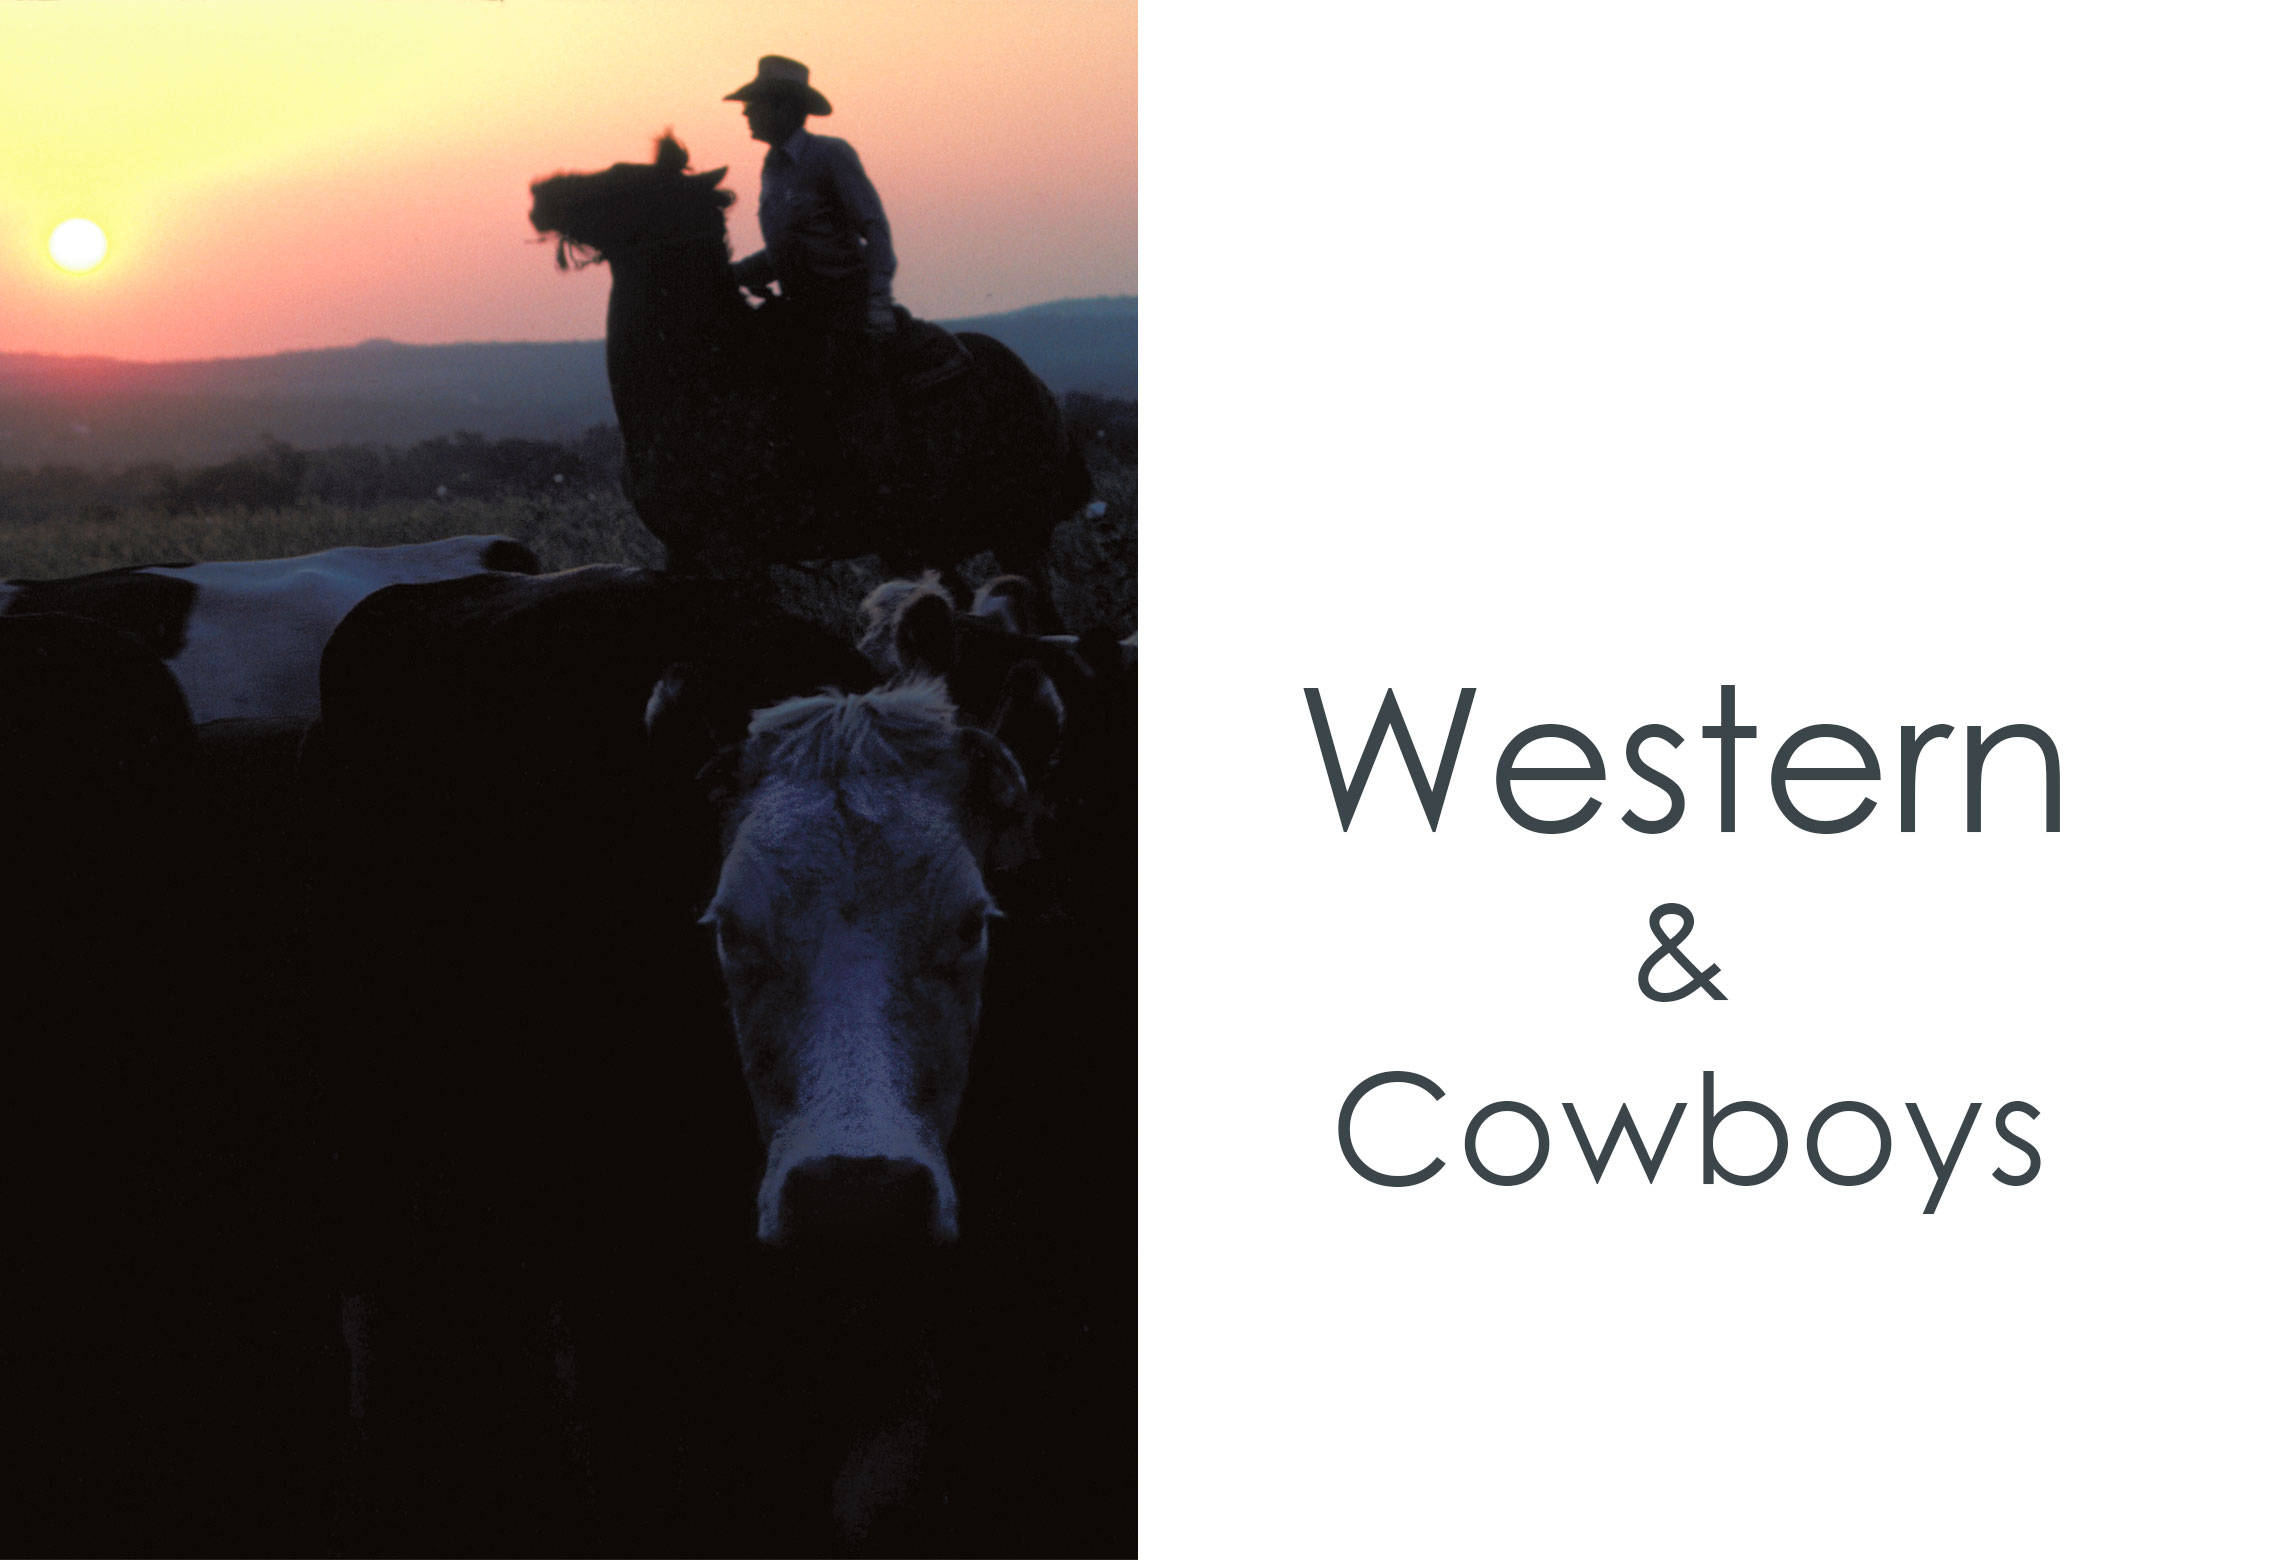 In the American West